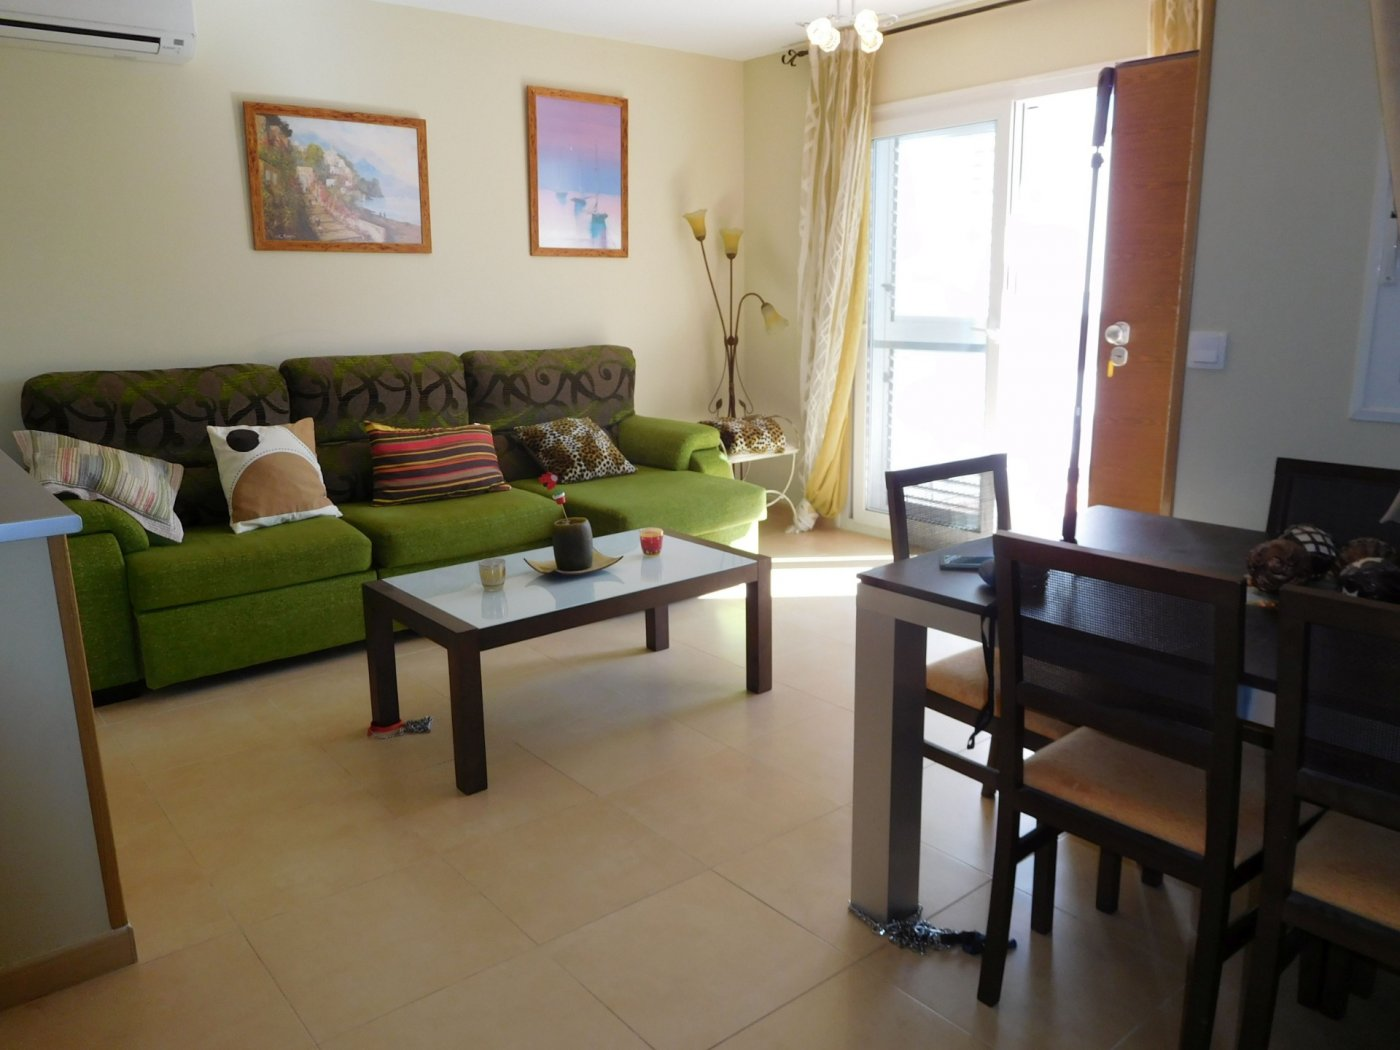 Image 7 Apartment ref 2712 for sale in Condado De Alhama Spain - Quality Homes Costa Cálida